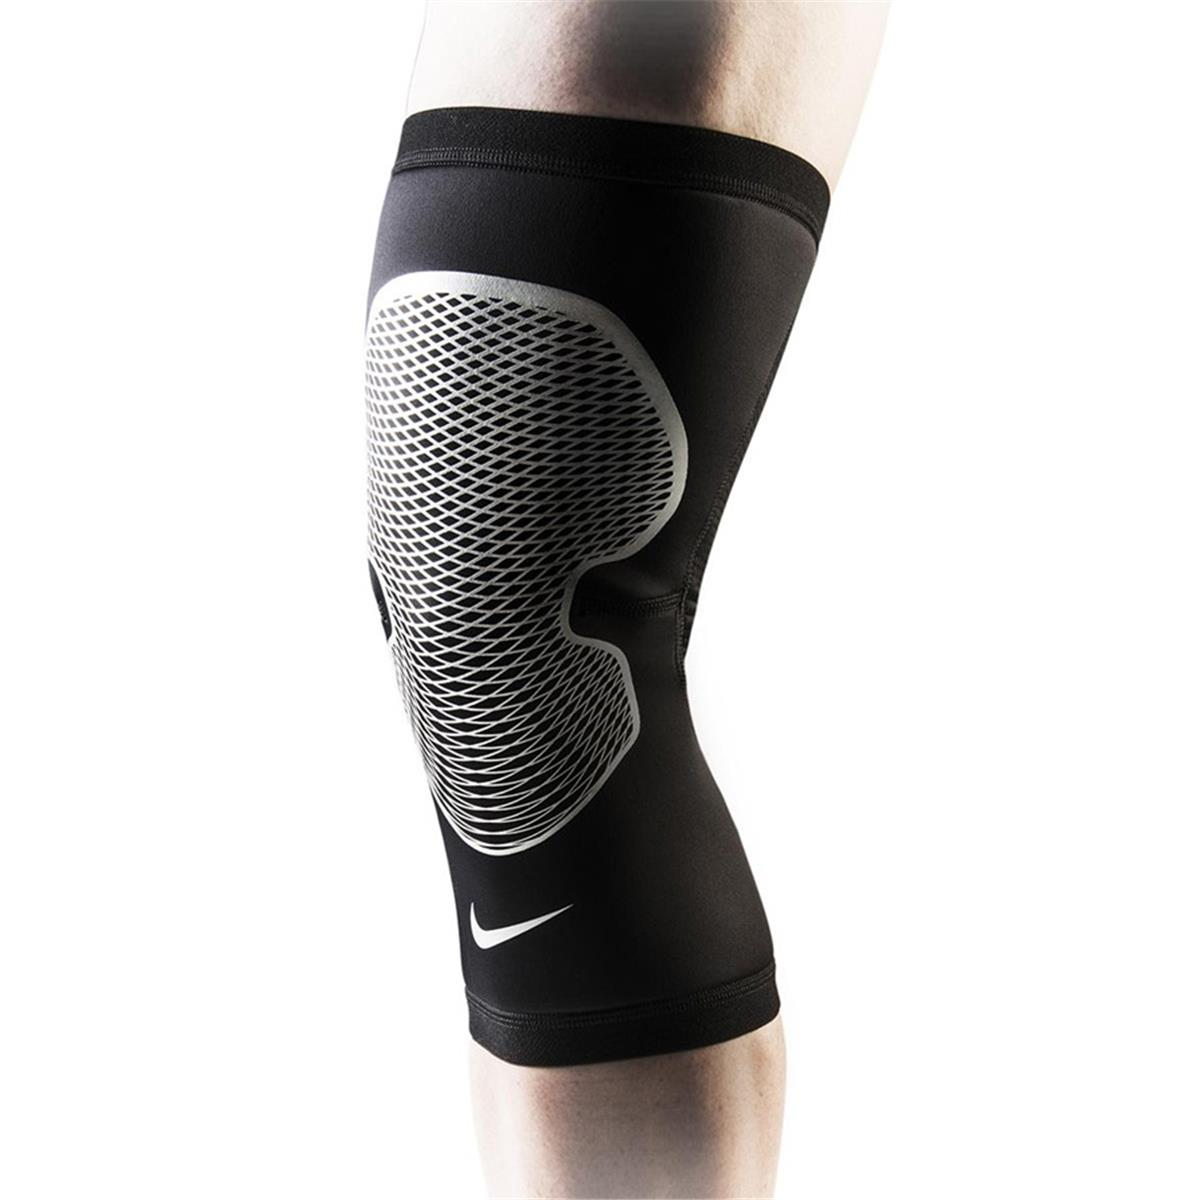 Nike Pro Hyperstrong Knee Support 20 Direct Squash